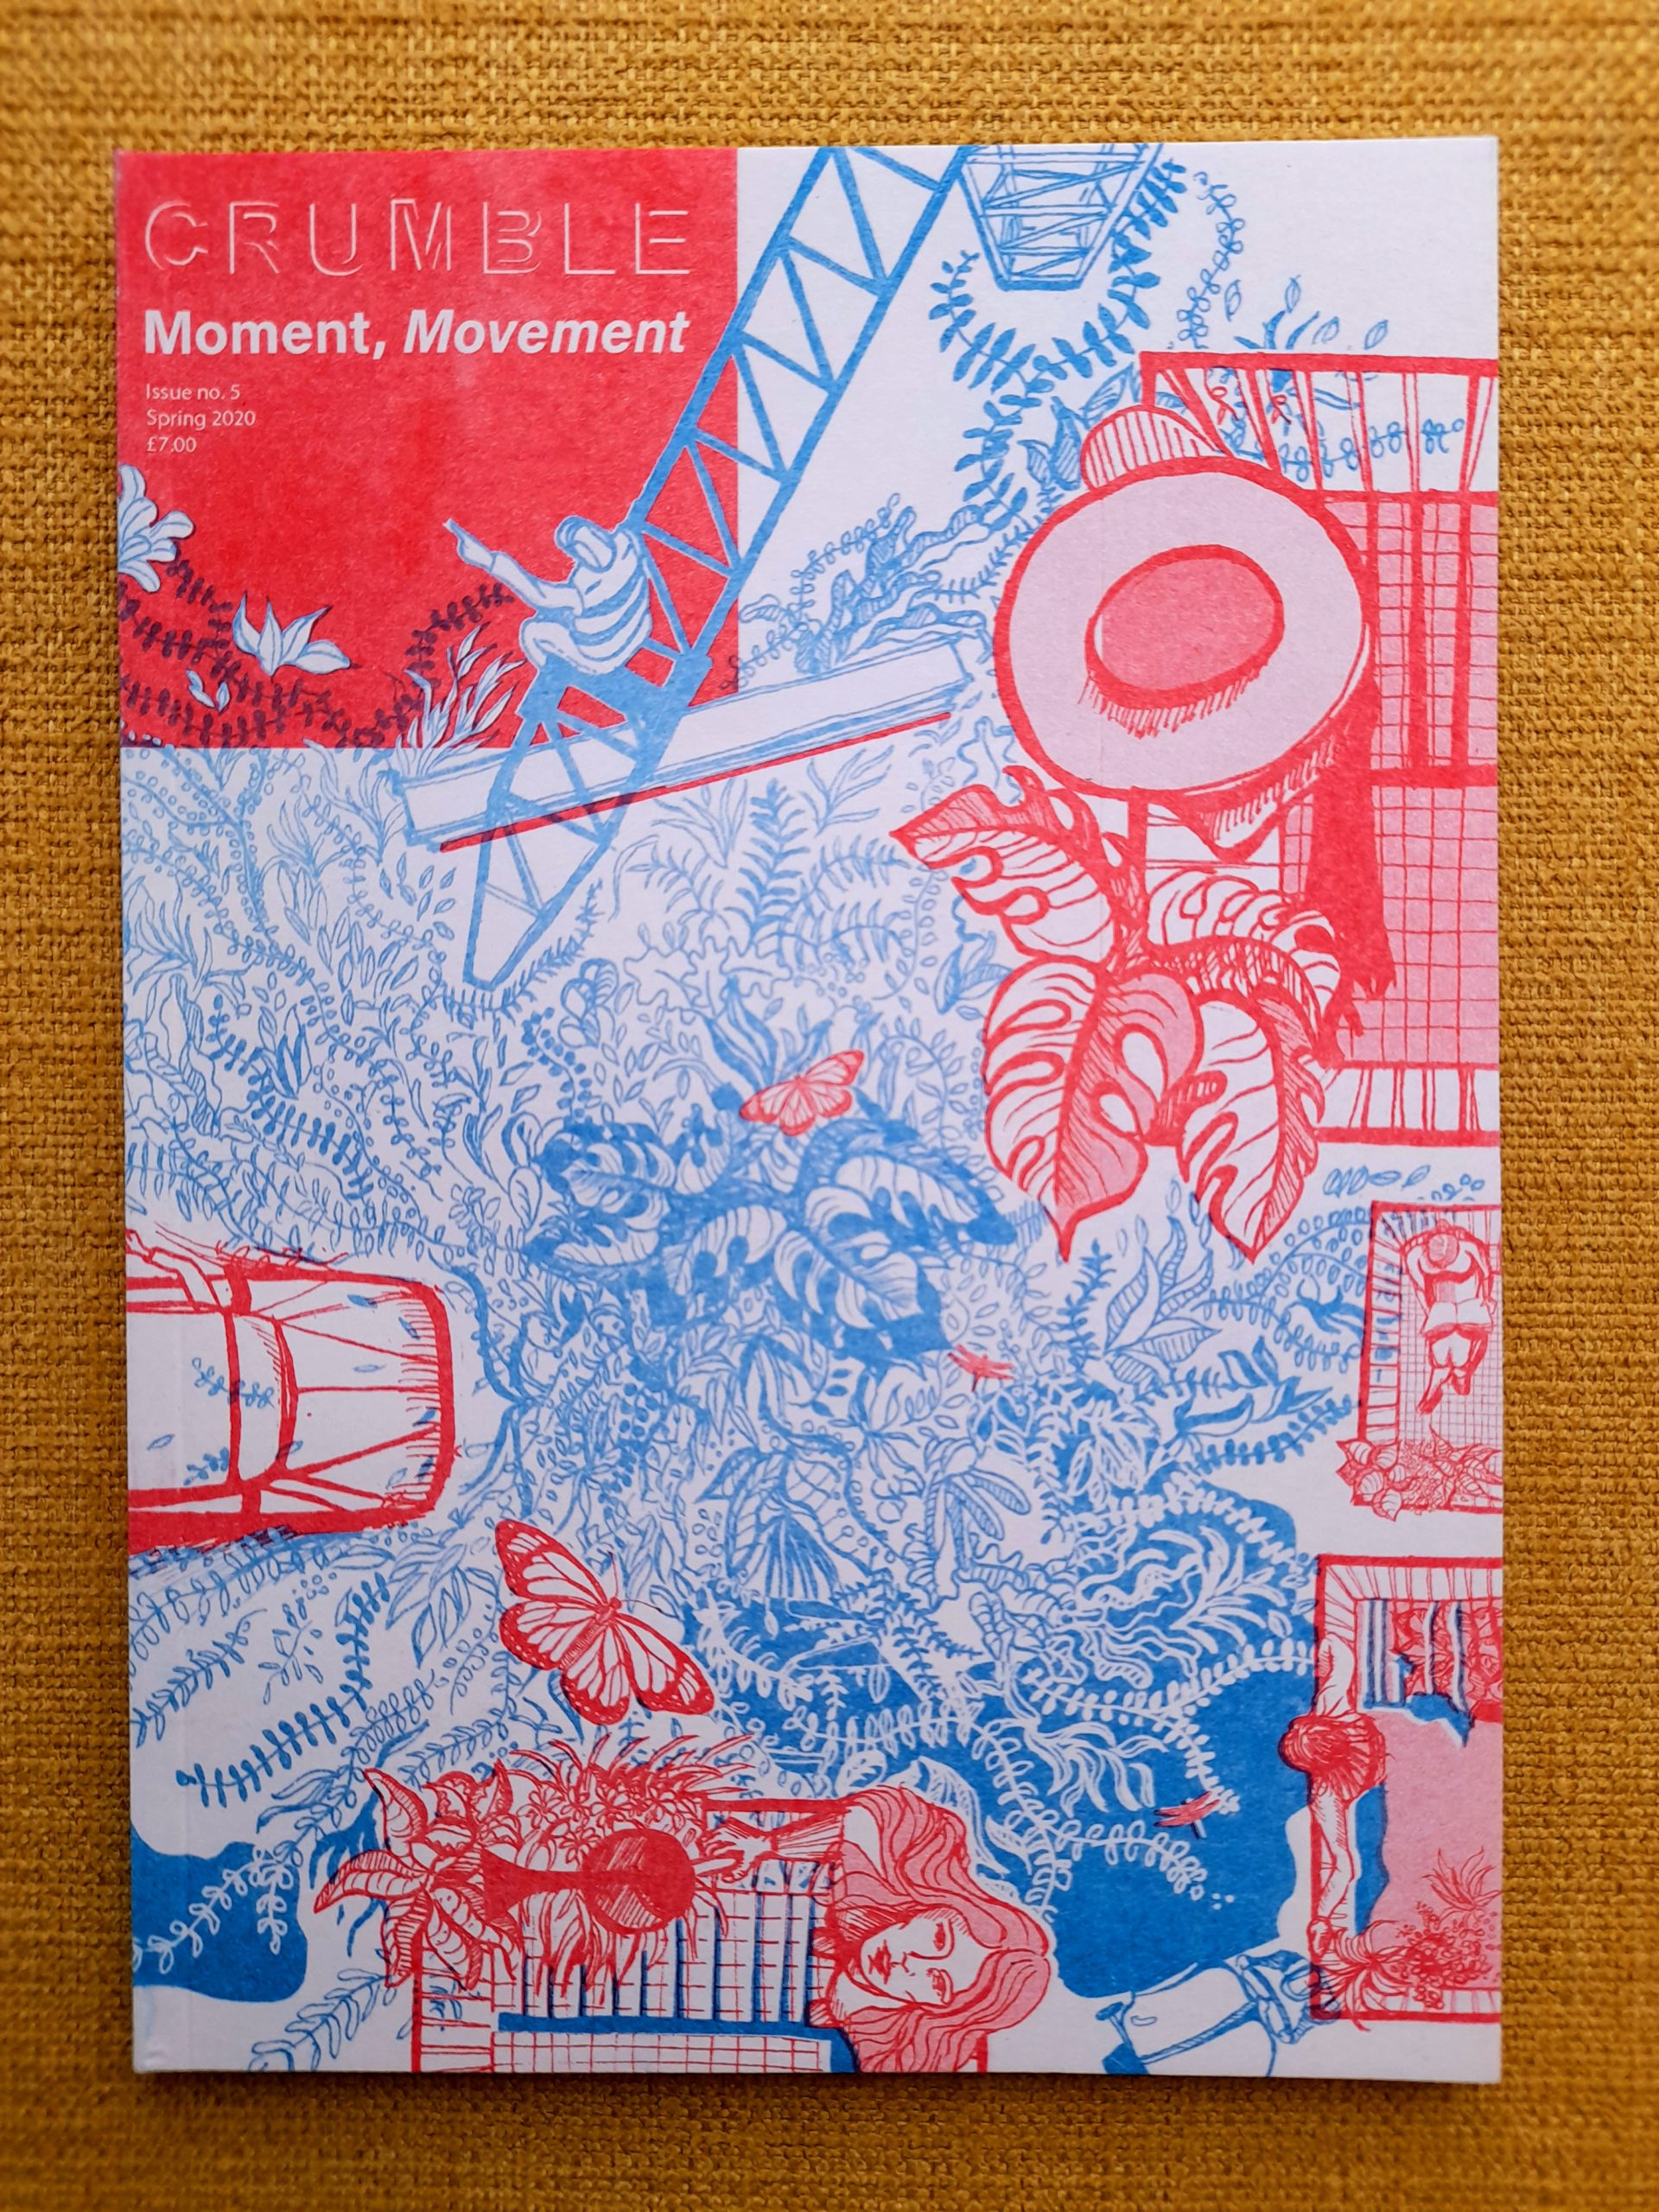 Crumble – Issue 5 Moment, Movement